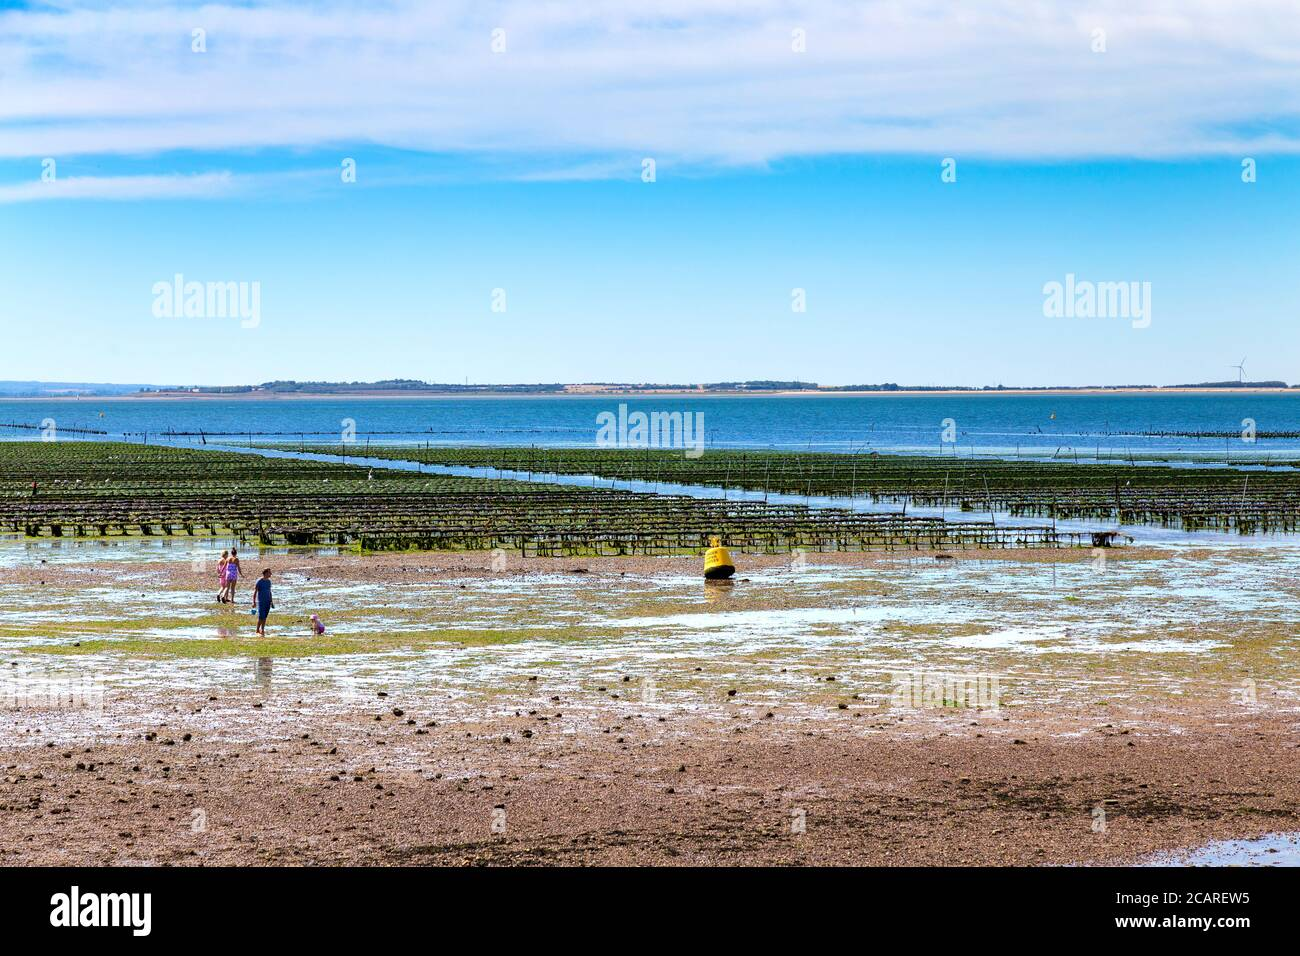 Oyster beds in the sea, Whitstable, Kent, UK Stock Photo